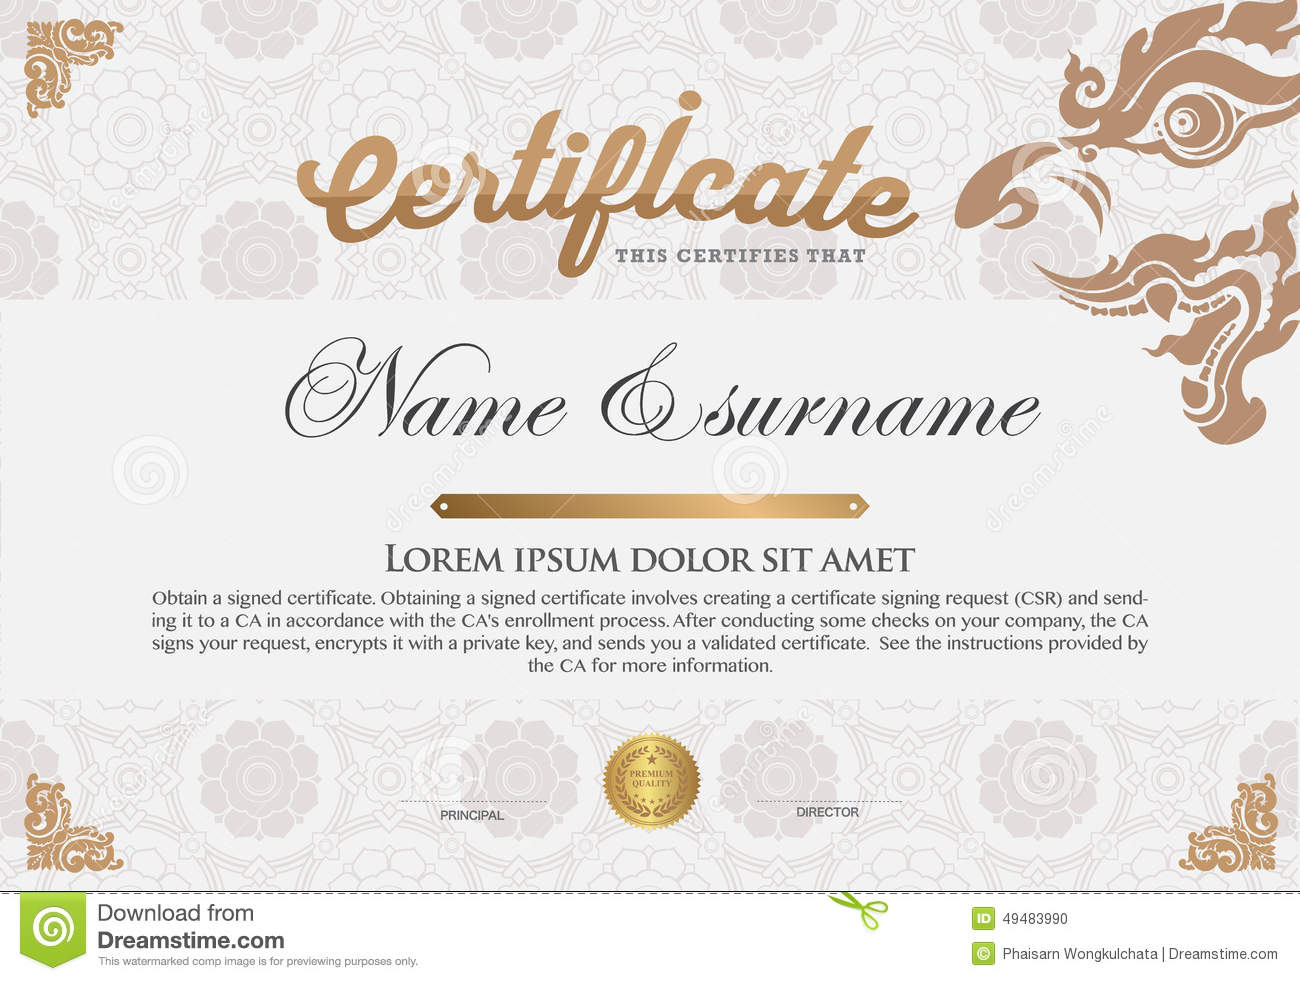 Amazing Certificate Design Template.  Certificate Designs Templates